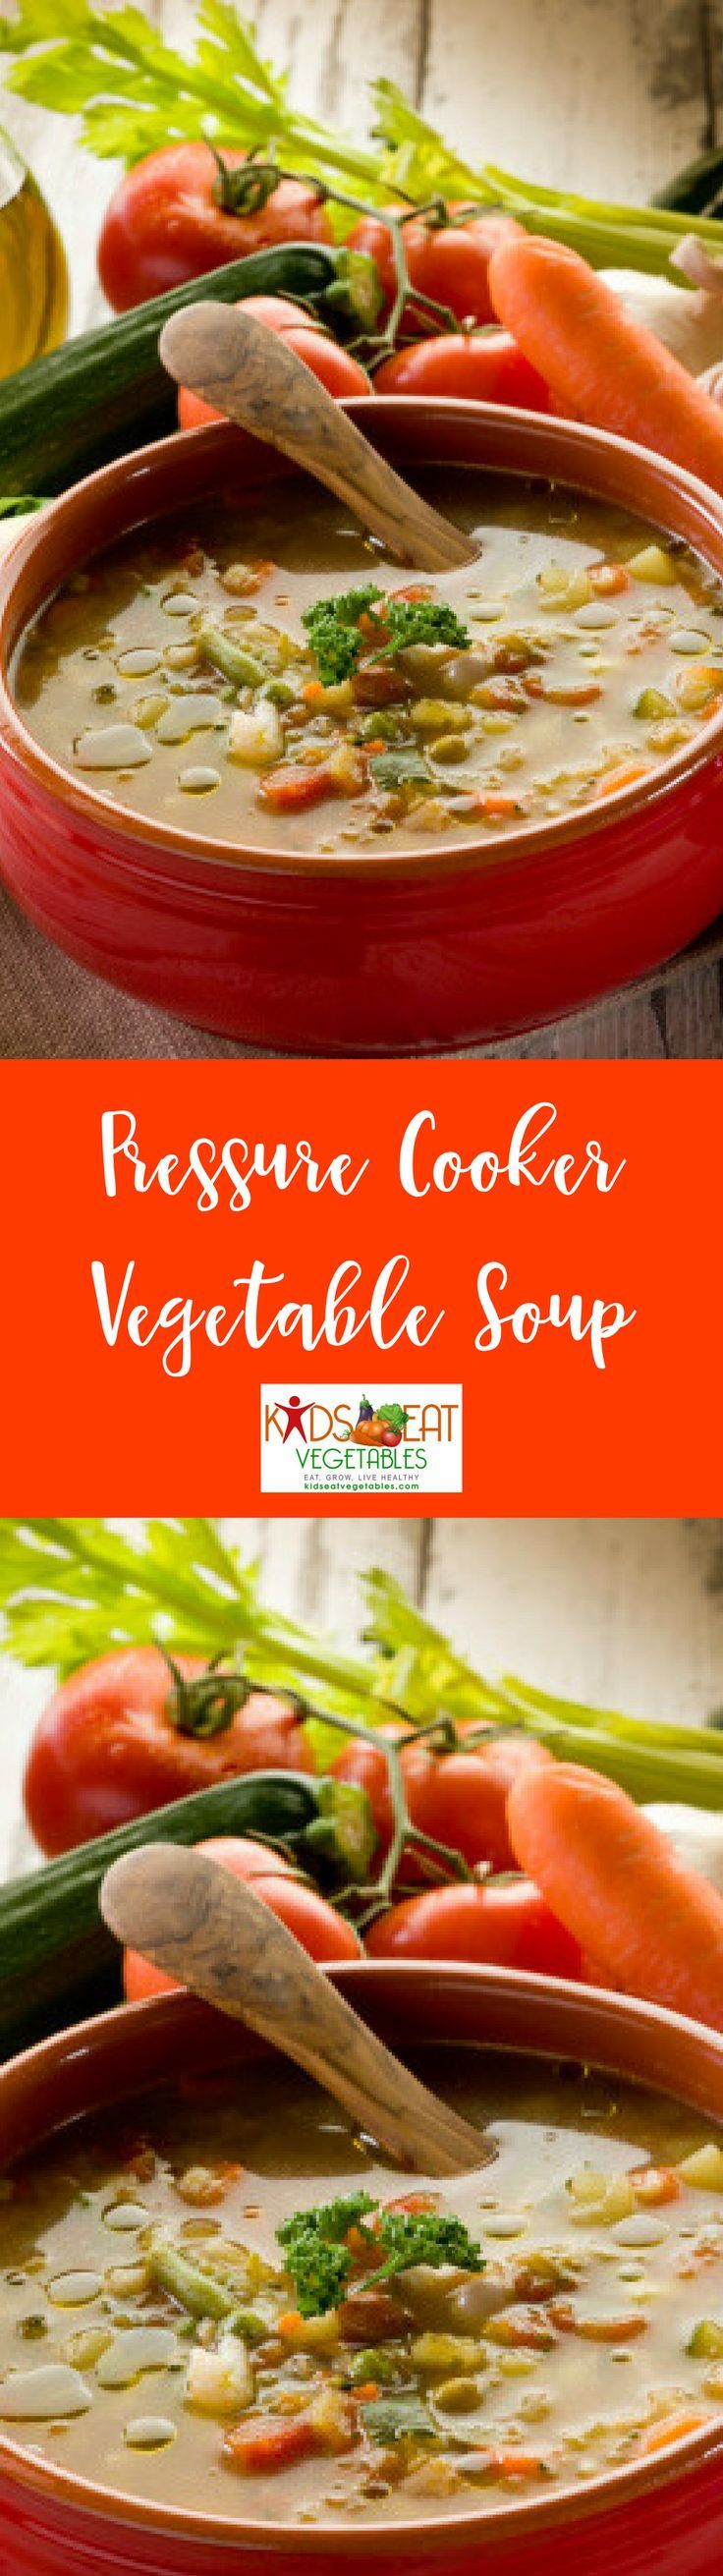 A pressure cooker vegetable soup is perfect for cold weather. It's fairly common to crave for something hot to eat during fall or winter. Unfortunately, not everyone has the time to watch a pot of soup cook for a long time. Admittedly though, a vegetable